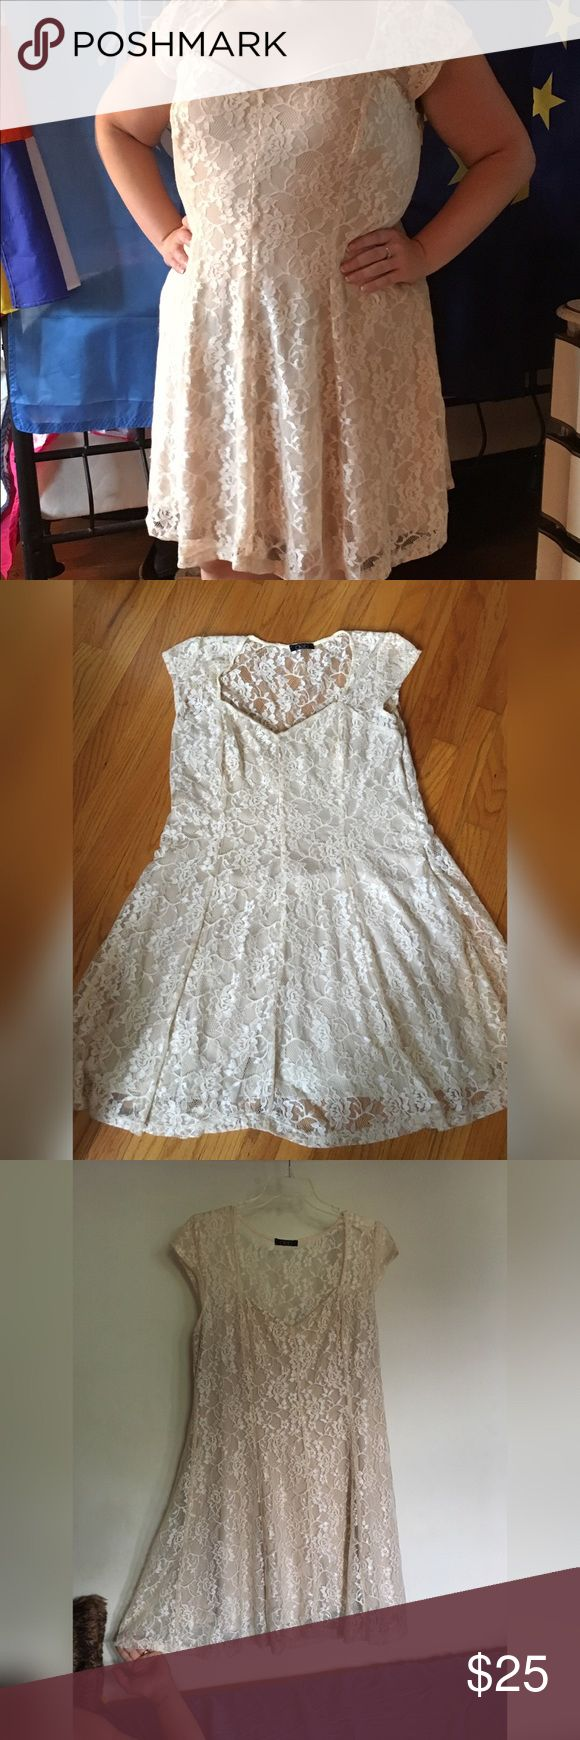 Selling this PLUS Stunning lace dress on Poshmark! My username is: nuclearhearts. #shopmycloset #poshmark #fashion #shopping #style #forsale #Dresses & Skirts